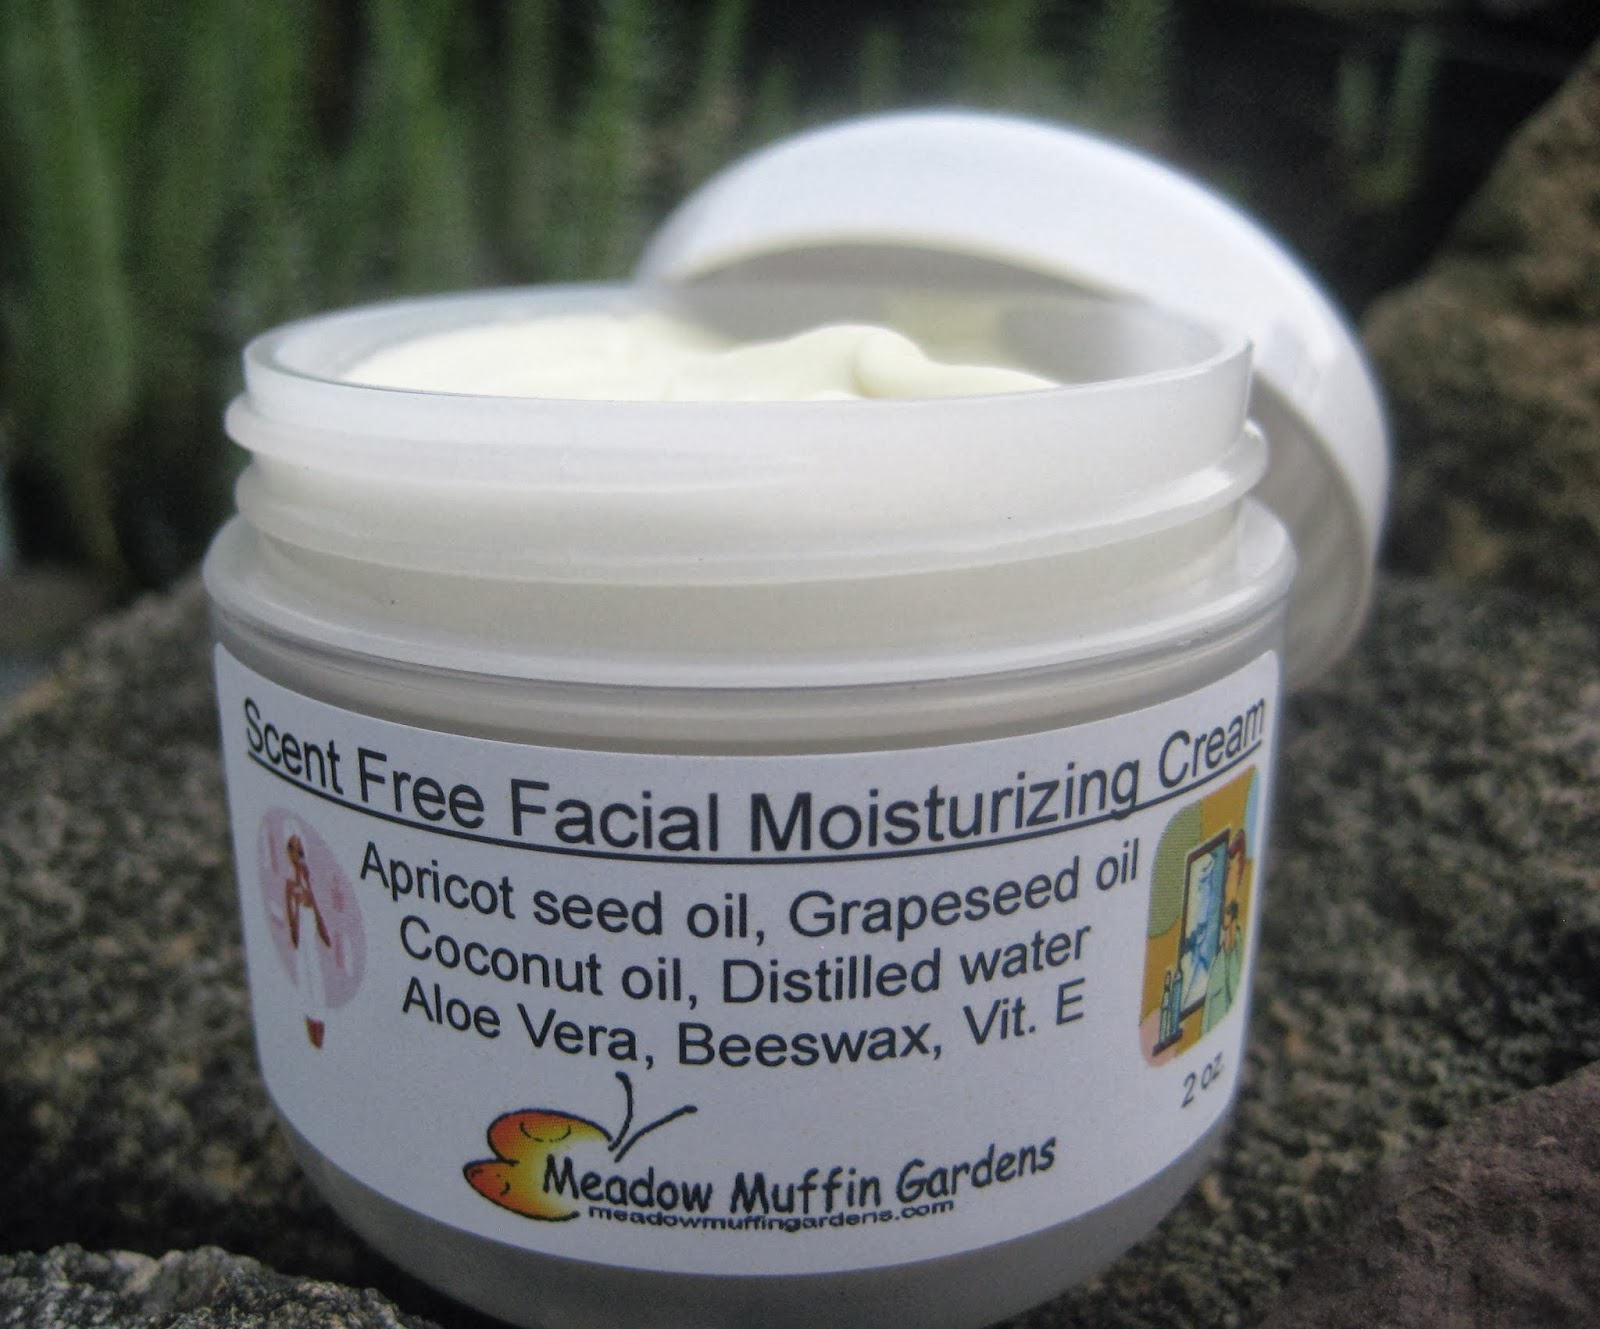 Meadow Muffin Gardens: Men's Personal Skin Care, Safe